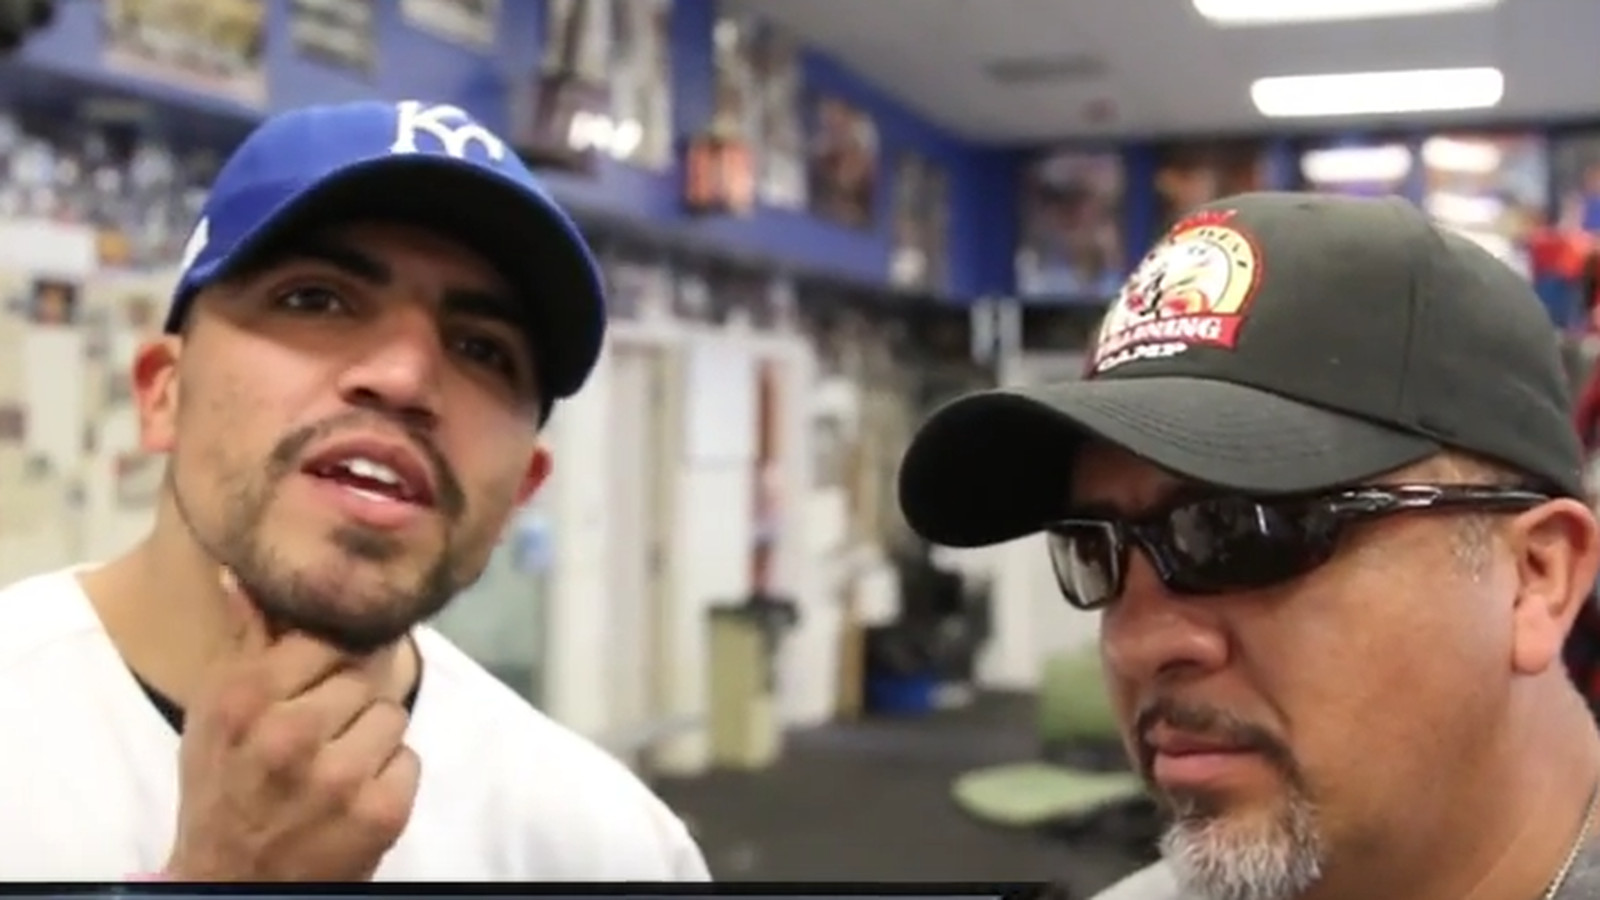 Victor Ortiz And Joel Diaz Give Their Thoughts On Cotto Canelo moreover Jay Z Slapped With Paternity Suit together with Kanye West Slashes Price Of Bachelor Pad in addition Jay Z Owes Oscar De La Hoya Charity Cotto Canelo furthermore Beyonce Jay Z Looked Like Royalty At The Canelo Vs Cotto Fight Creed Star Michael B. on oscar de la hoya and jay z bet 100k